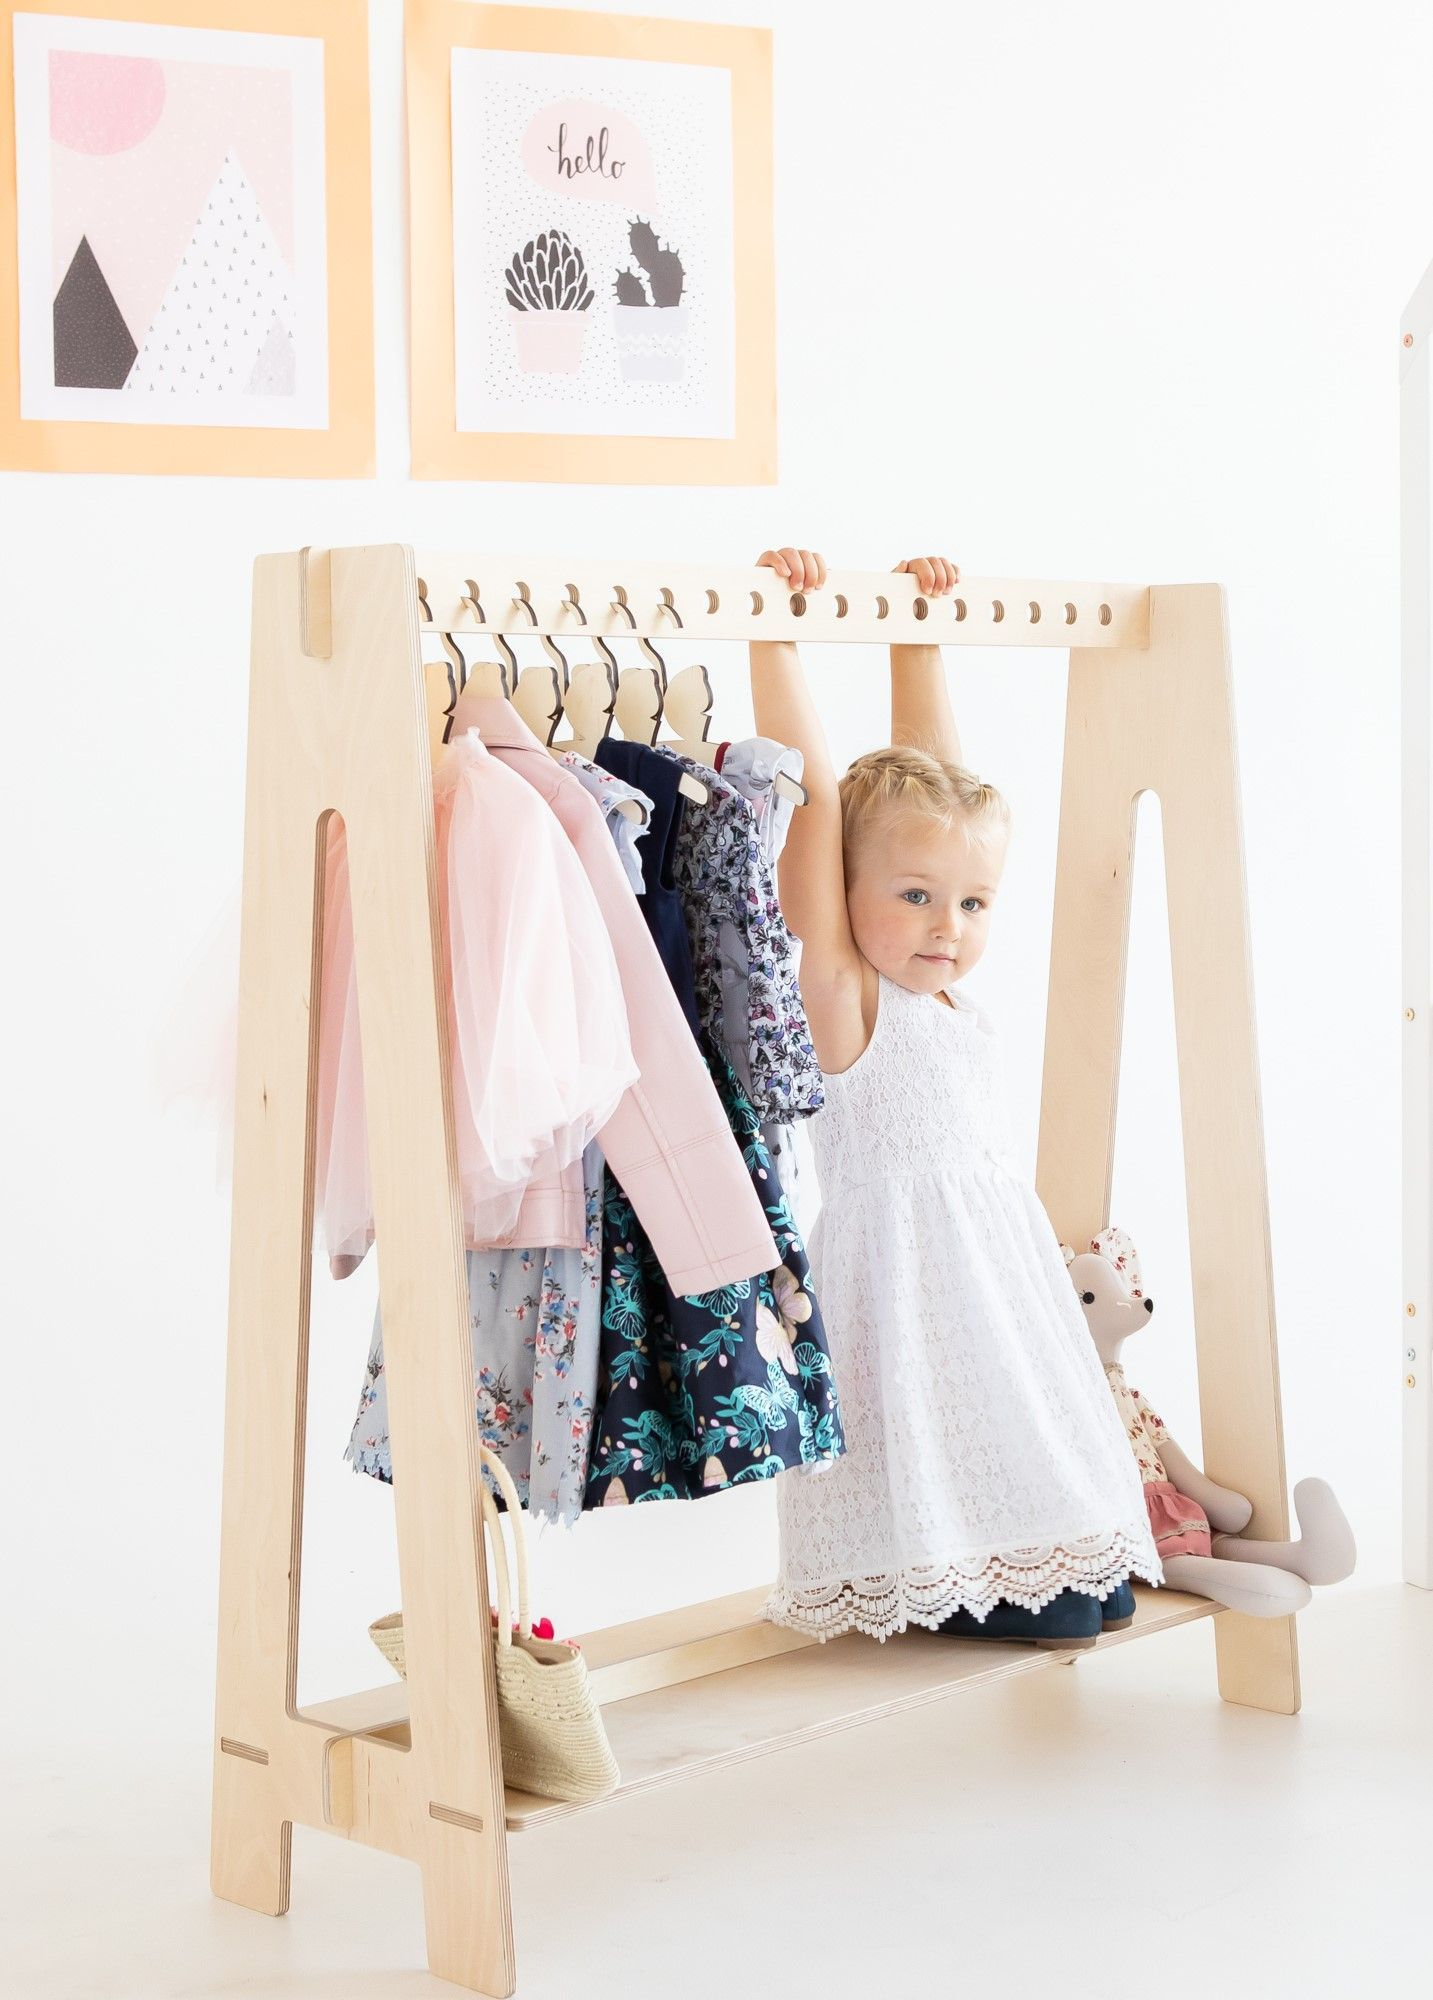 Wood Stand Clothing Rack Nursery Decor Clothes Storage Kids Clothing Childrens Decor Kids Bedroom P In 2020 Kids Clothes Storage Wood Clothes Wood Clothing Rack